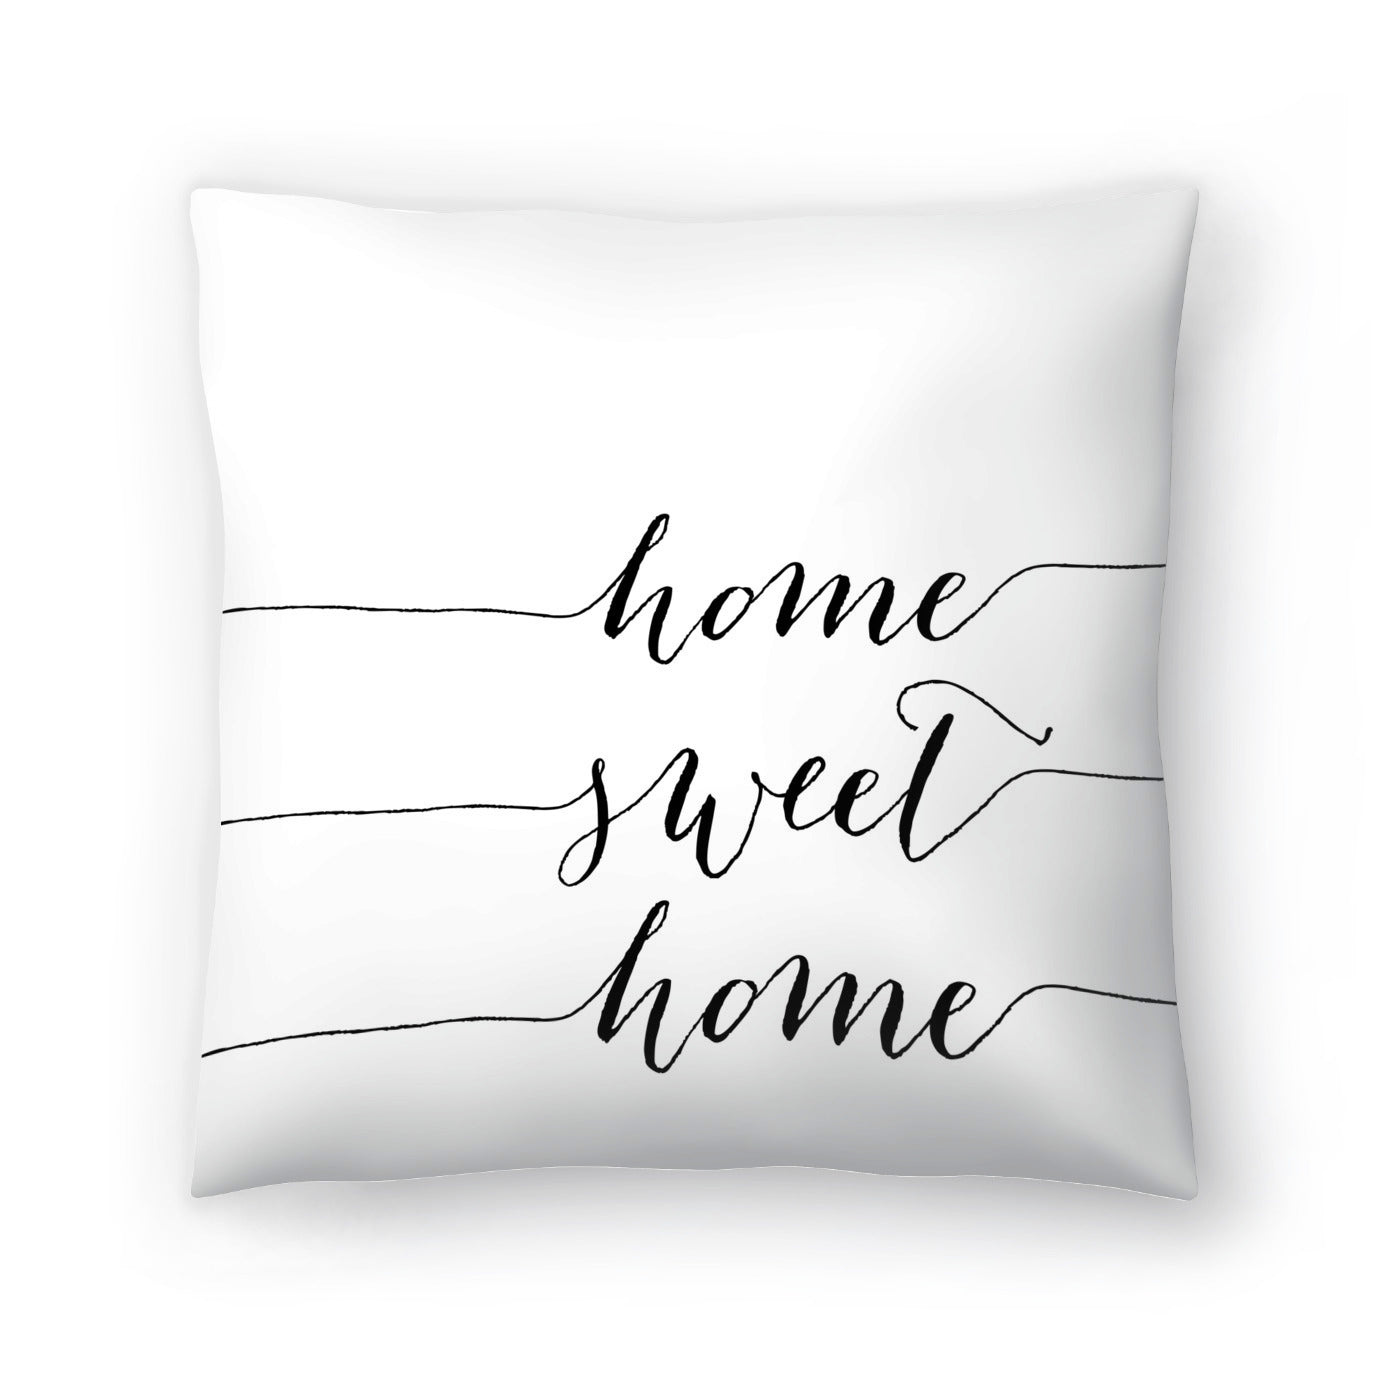 Home Sweet Home Black by Amy Brinkman Decorative Pillow - Decorative Pillow - Americanflat